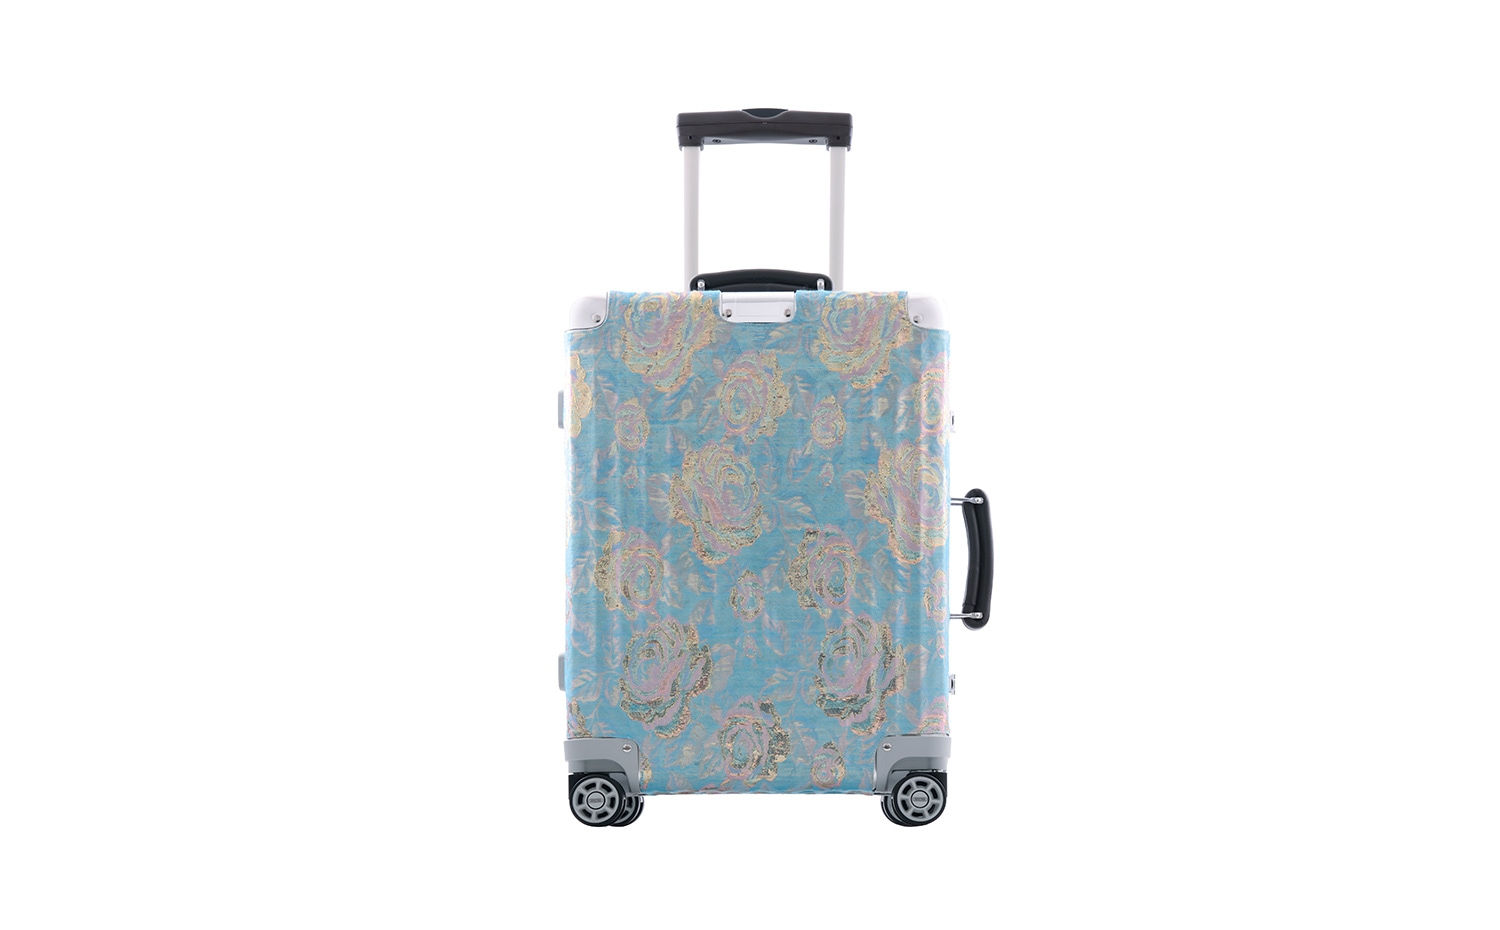 RIMOWA x Ong Shunmugam Capsule Collection, India Design